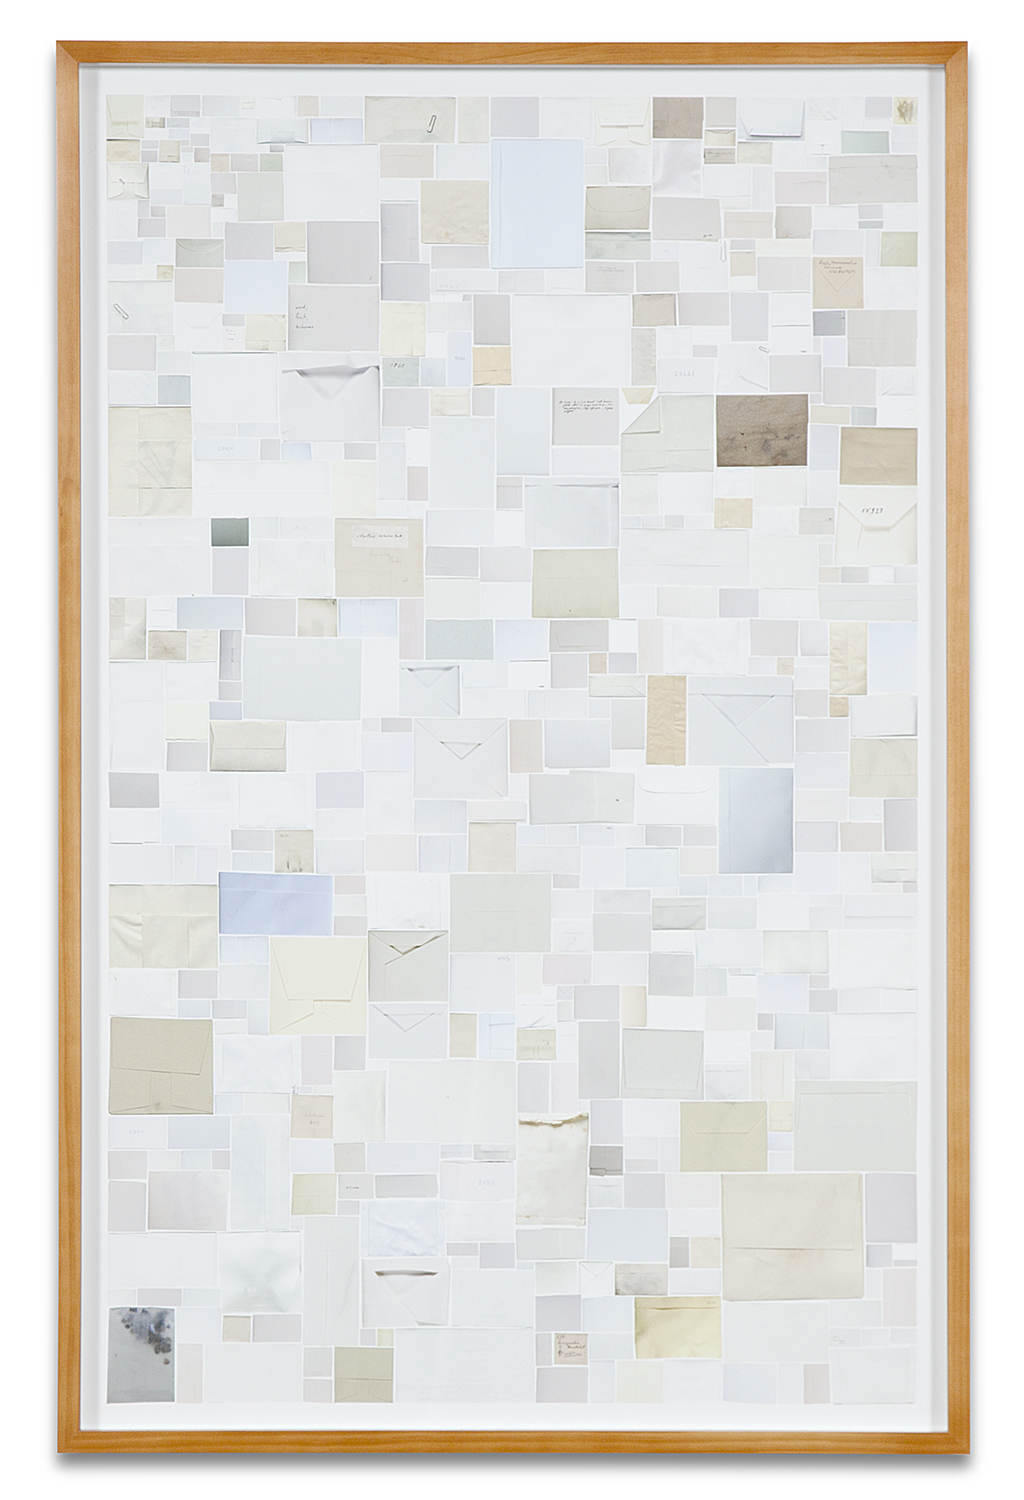 Simmons & Burke,  Enveloped Specimens #1,  2013, pigment print, 45 x 29 inches, Edition of 3